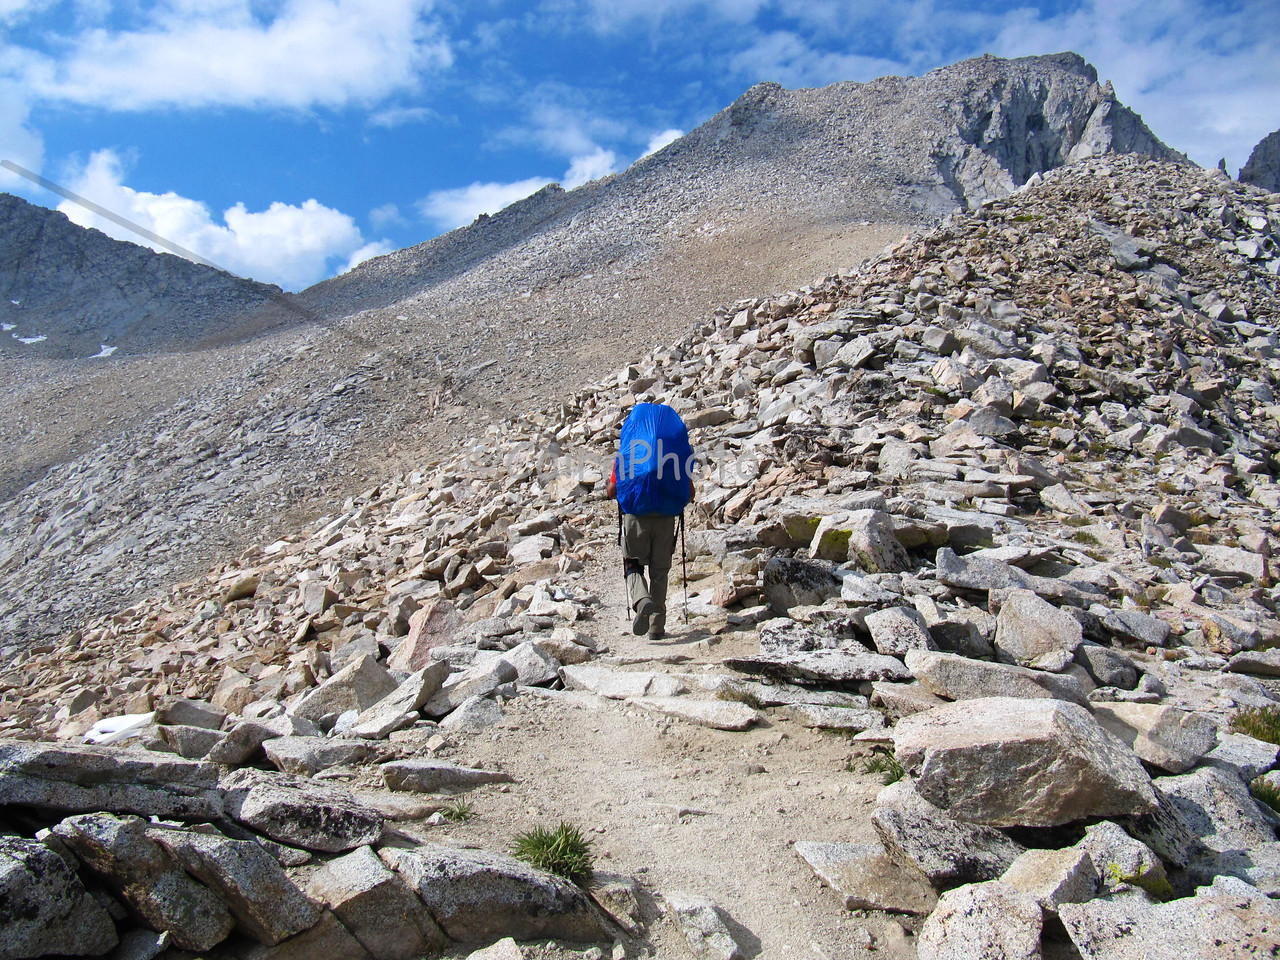 Climbing Forester Pass, the highest pass on the JMT and the PCT.